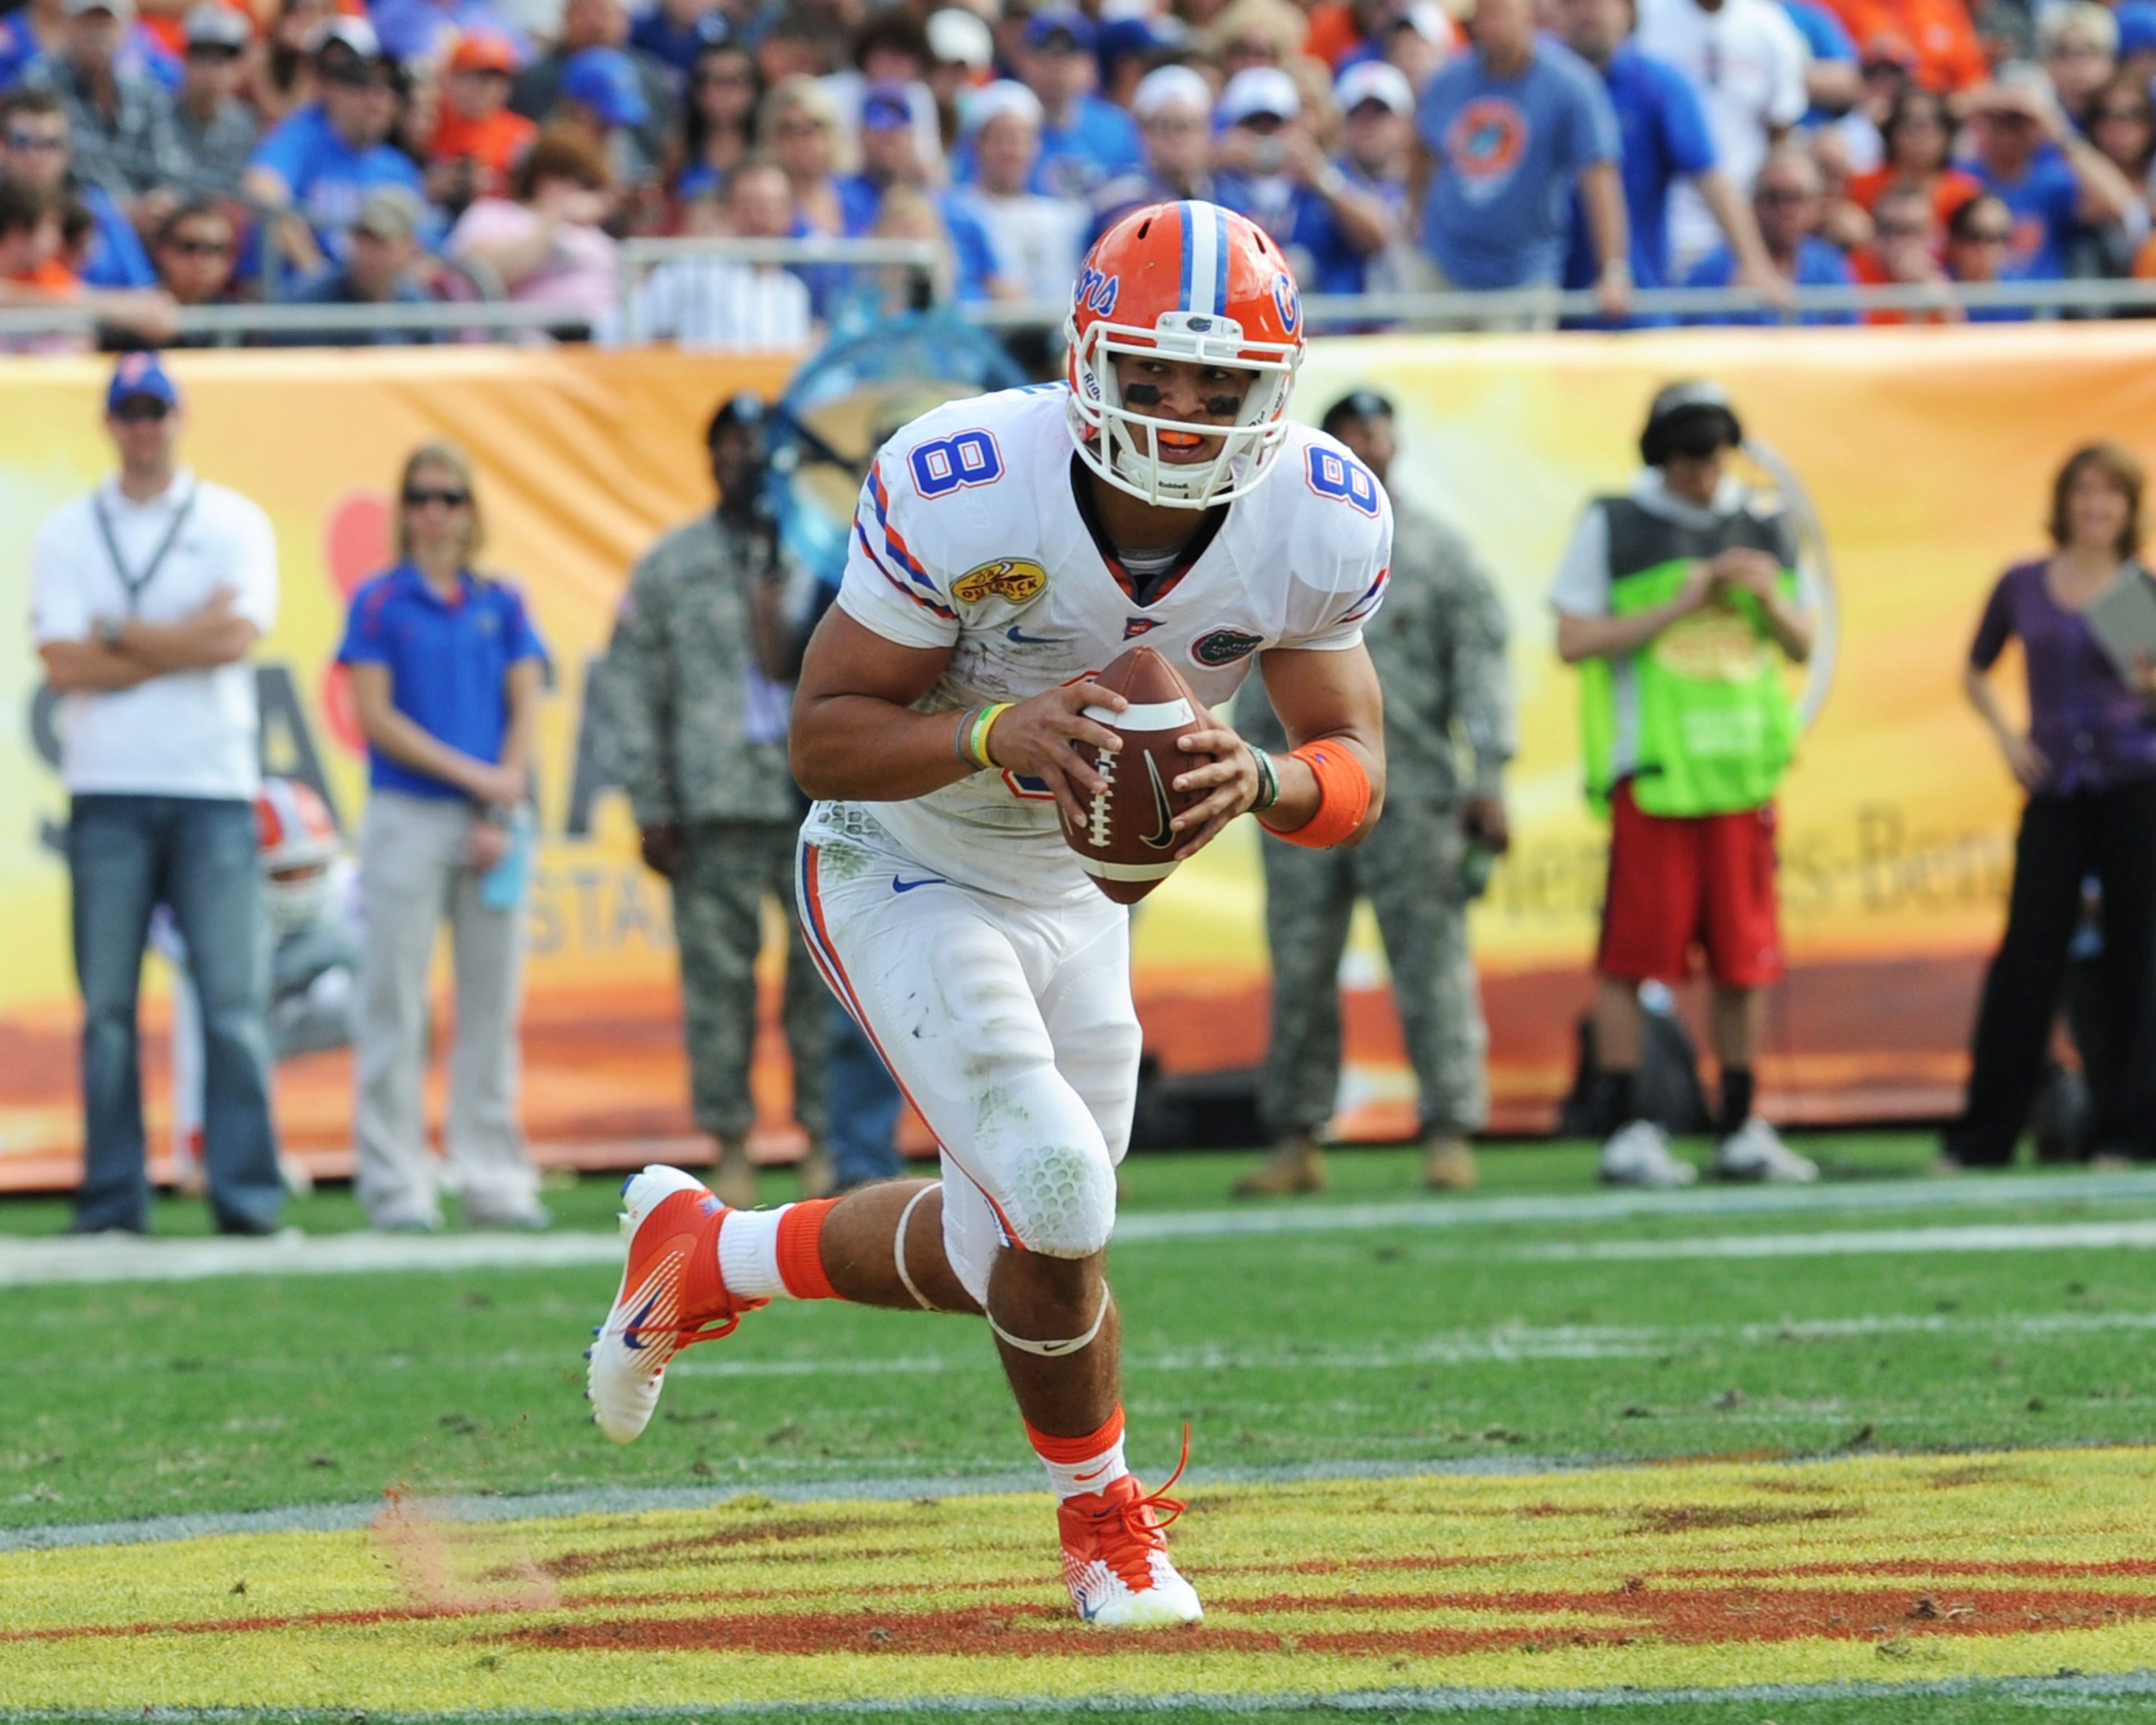 TAMPA, FL - JANUARY 1:  Quarterback Trey Burton #8  of the Florida Gators rushes upfield against the Penn State Nittany Lions January 1, 2010 in the 25th Outback Bowl at Raymond James Stadium in Tampa, Florida.  (Photo by Al Messerschmidt/Getty Images)